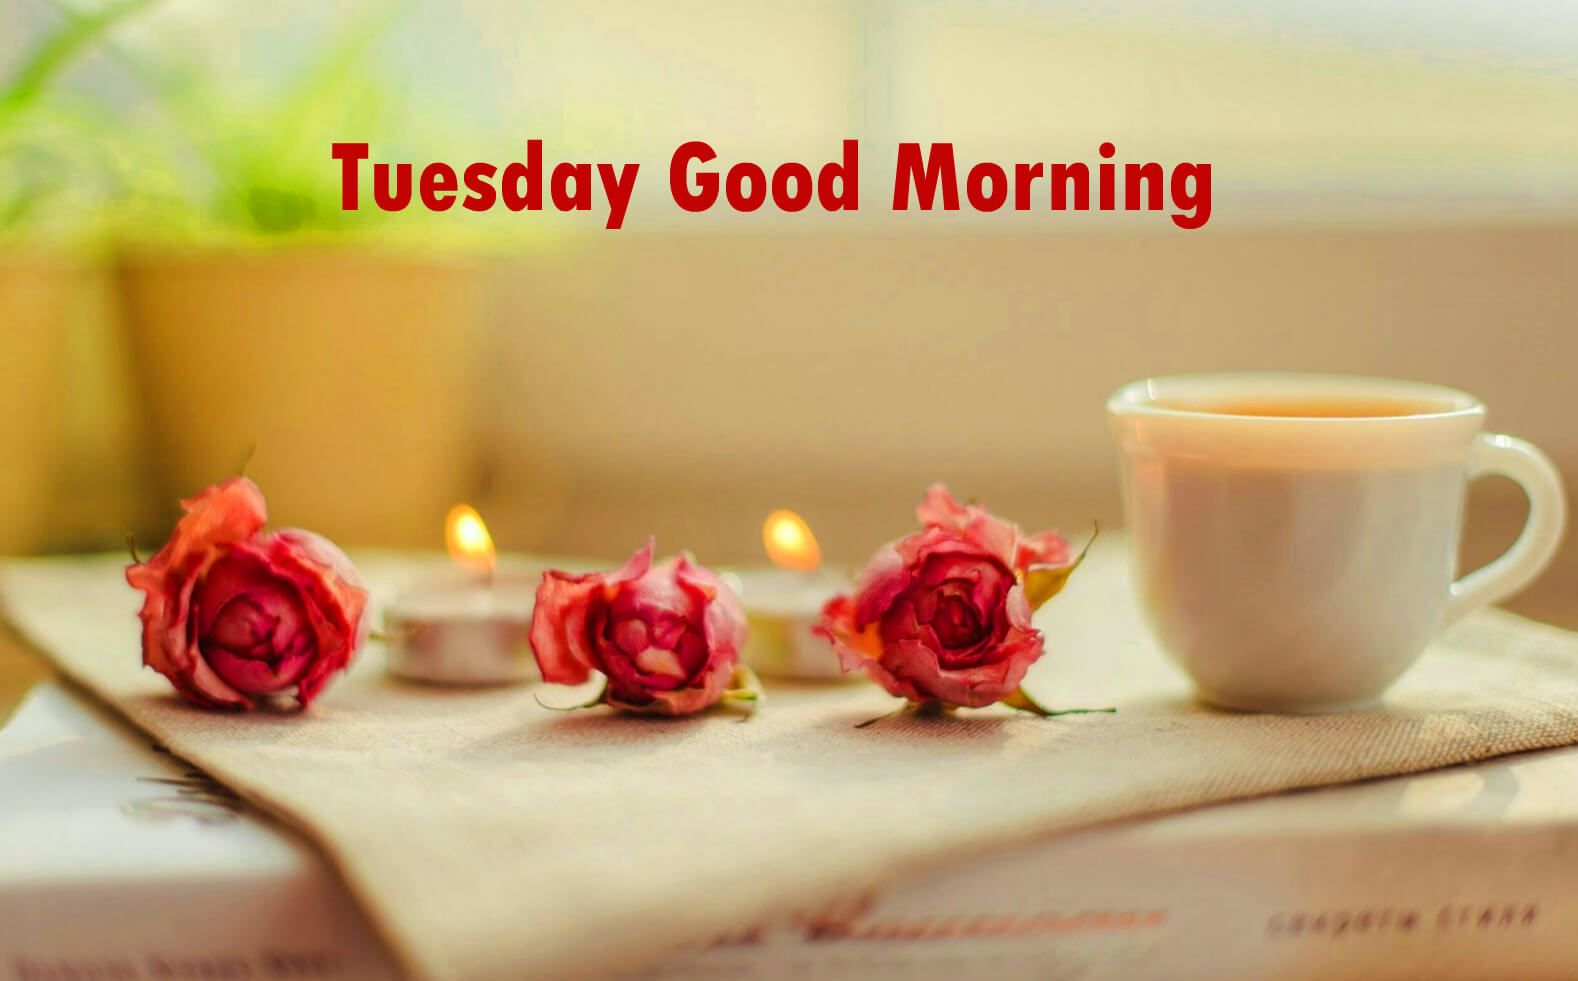 Good Morning Tuesday Wishes Quotes Images Messages For Your Loved